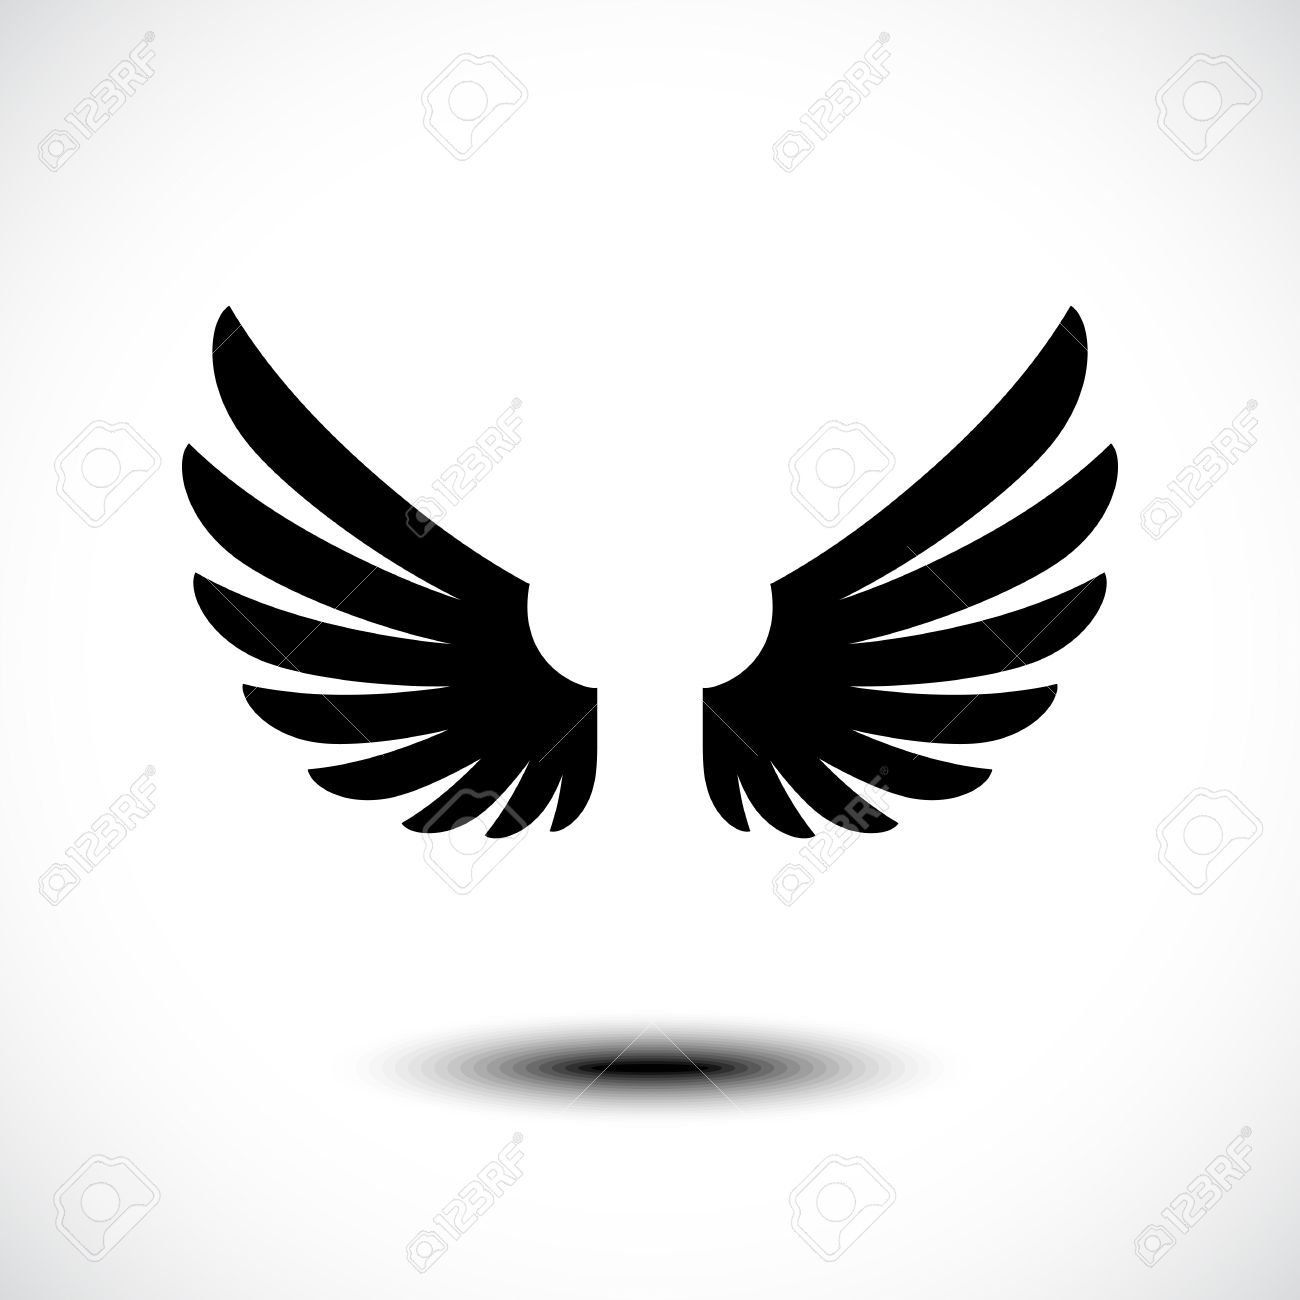 angel wings vector illustration royalty free cliparts vectors and rh 123rf com wind vector wind vector